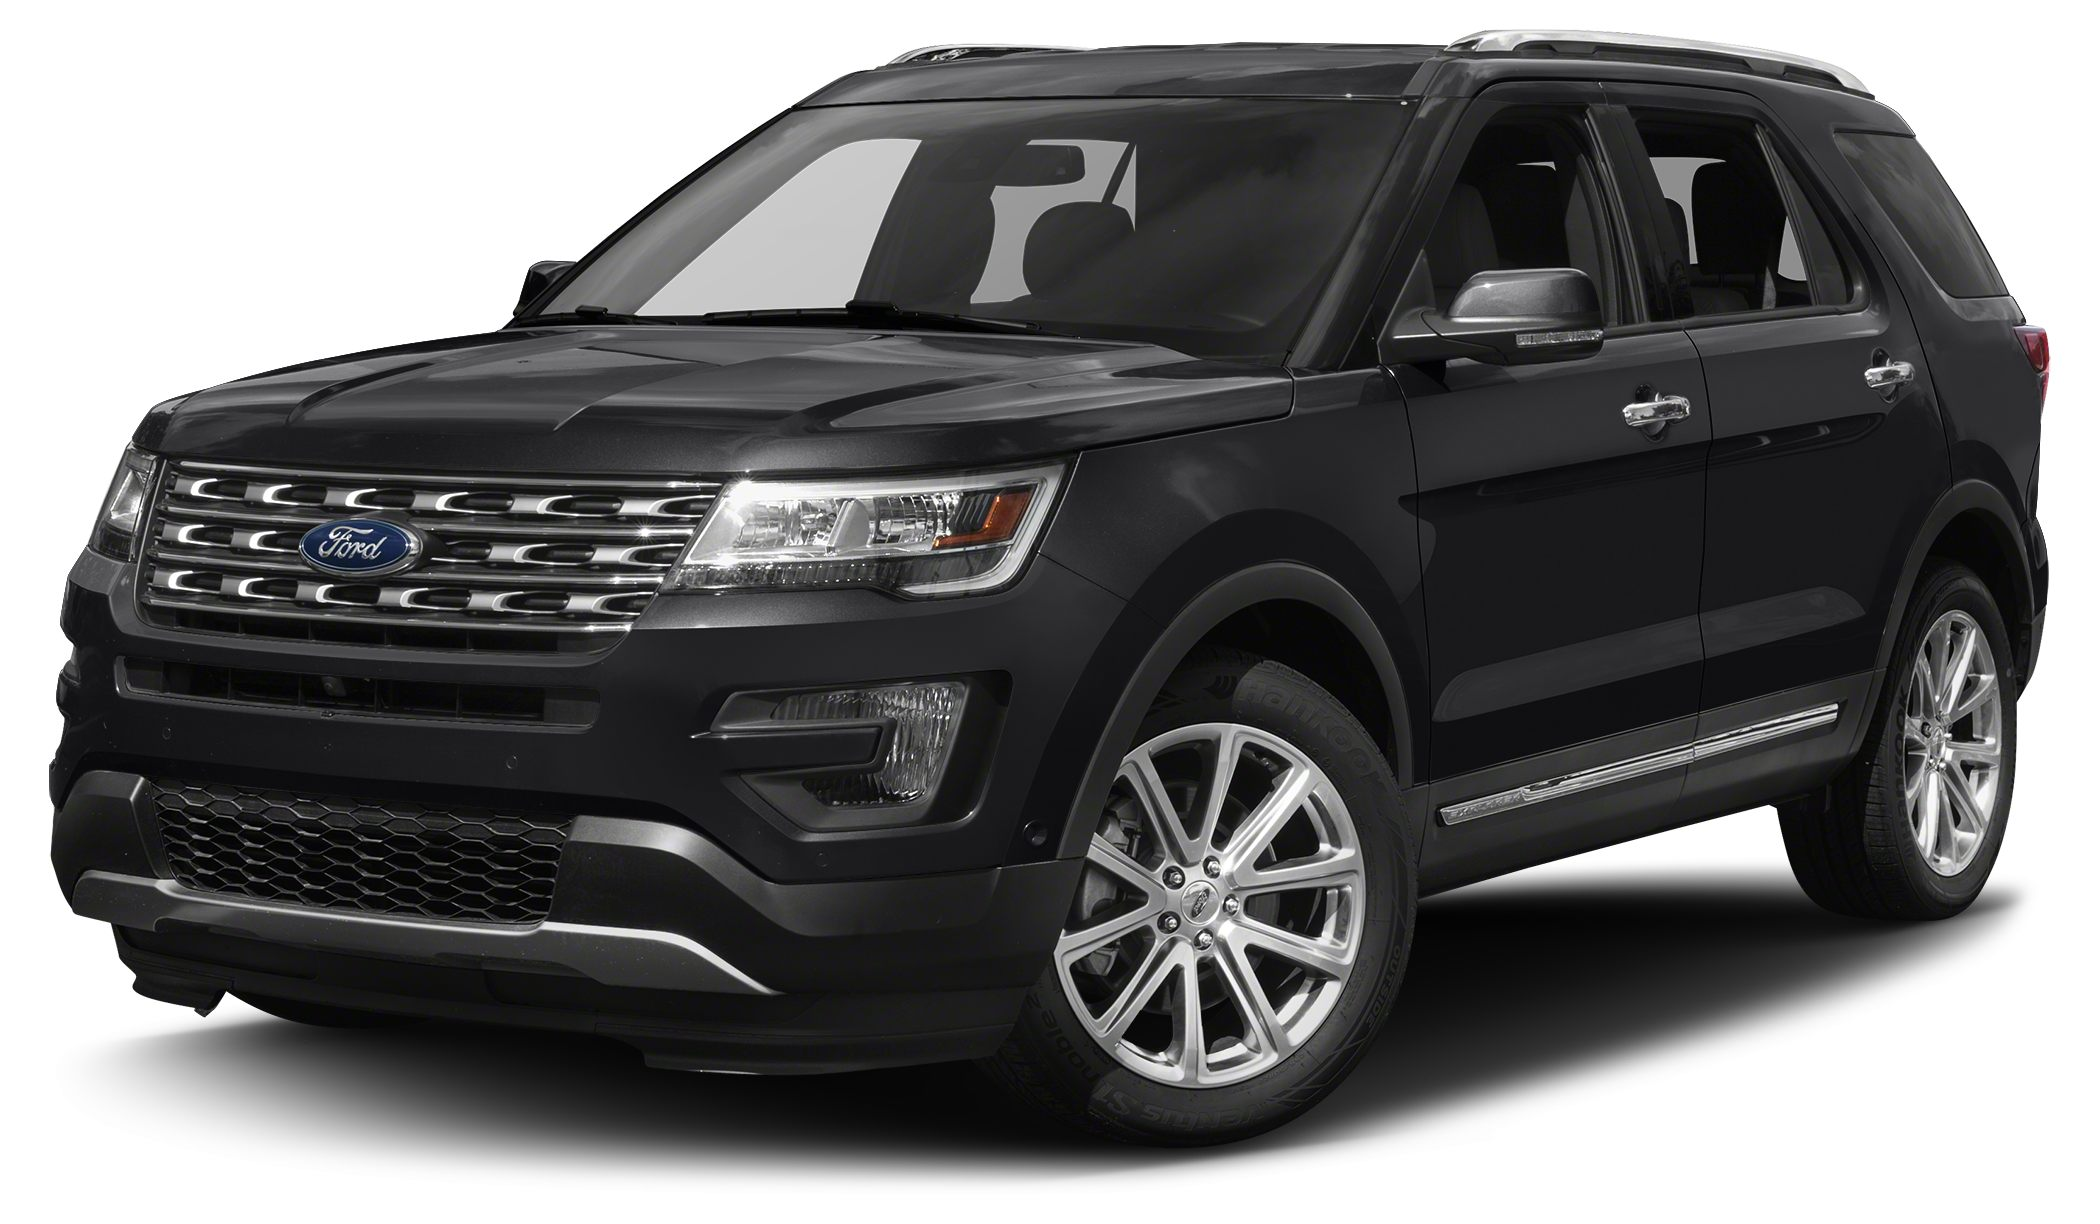 2016 Ford Explorer Limited Come see this 2016 Ford Explorer Limited here on our lot at Framingham